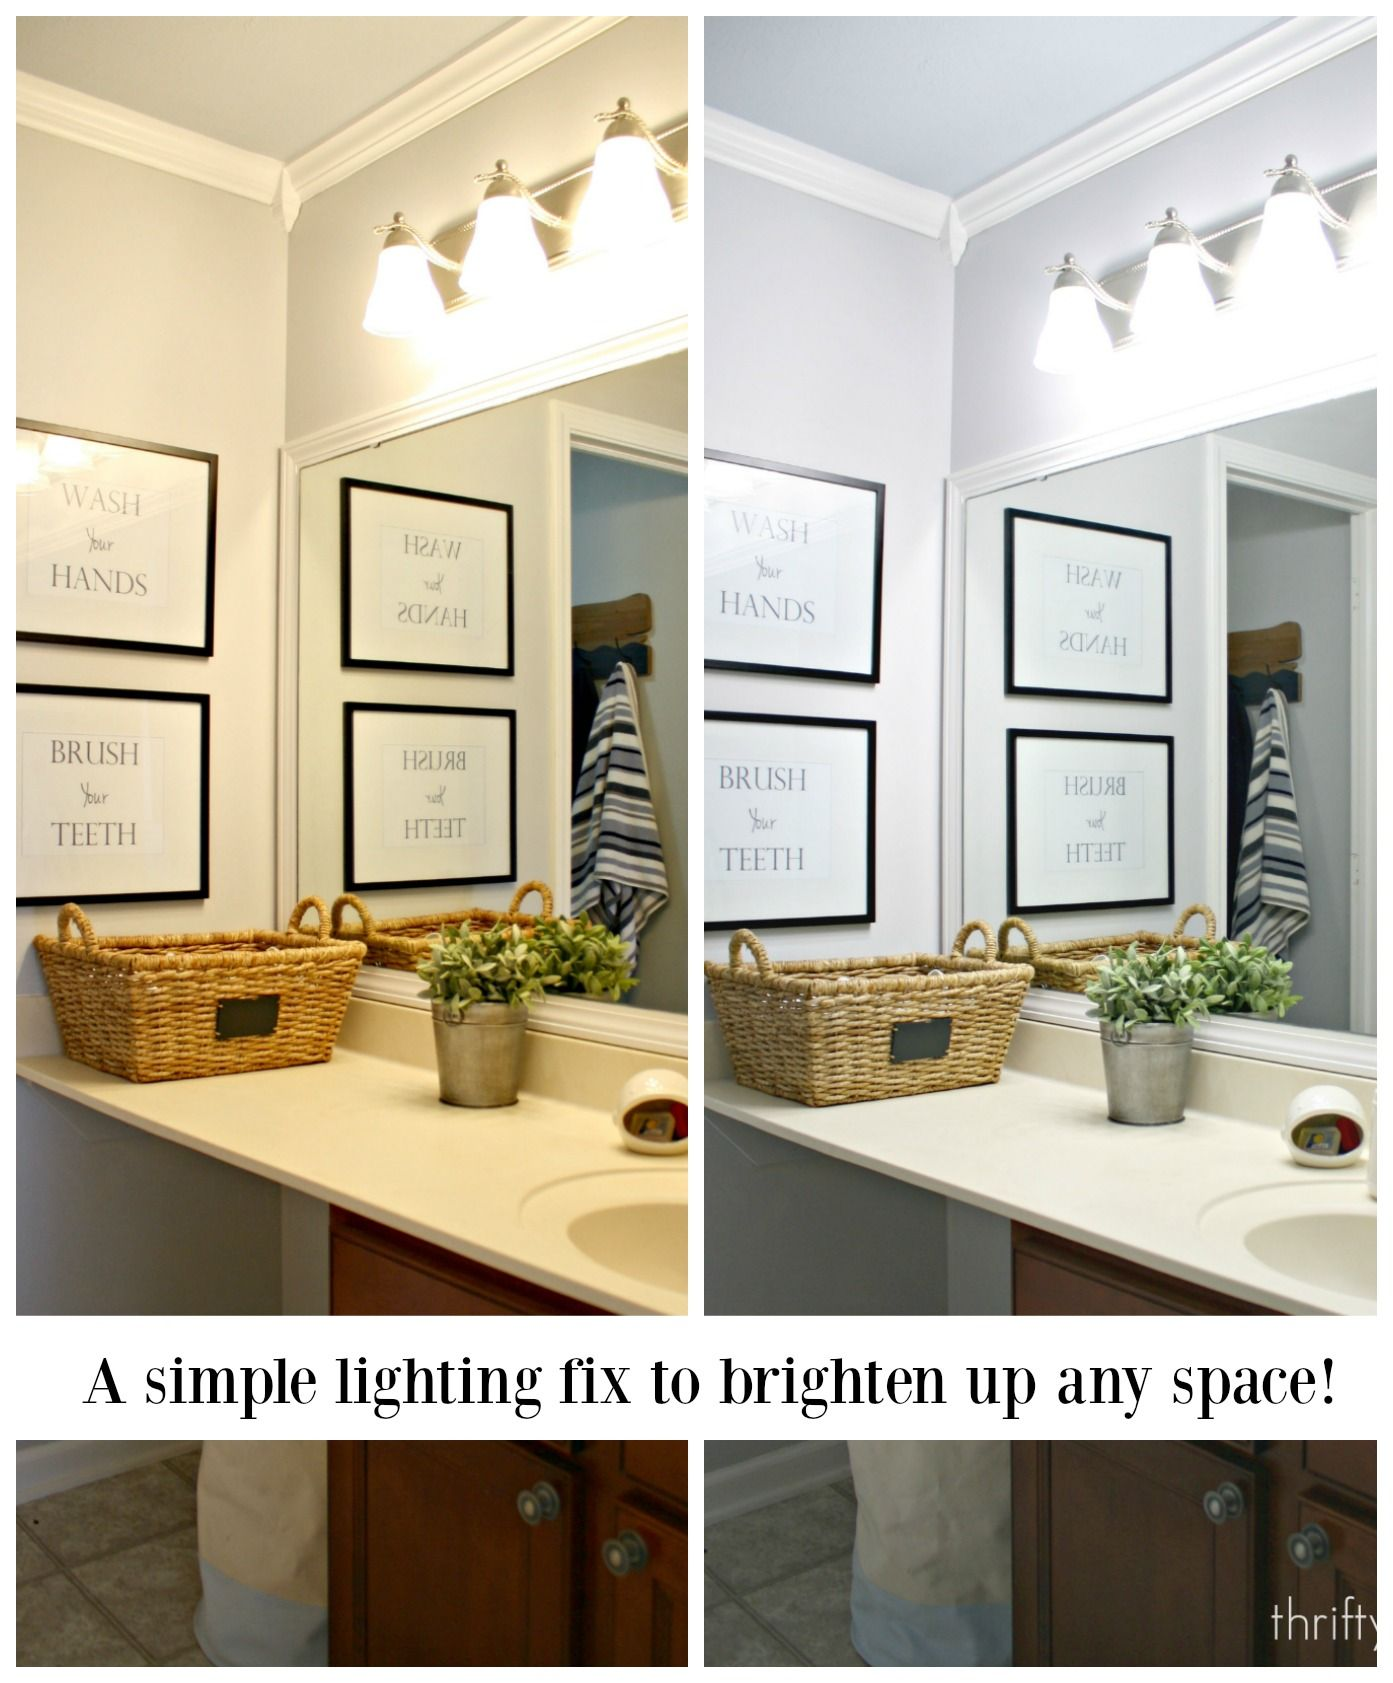 The Daylight Bulb Amazing With Images Kitchen Light Bulbs